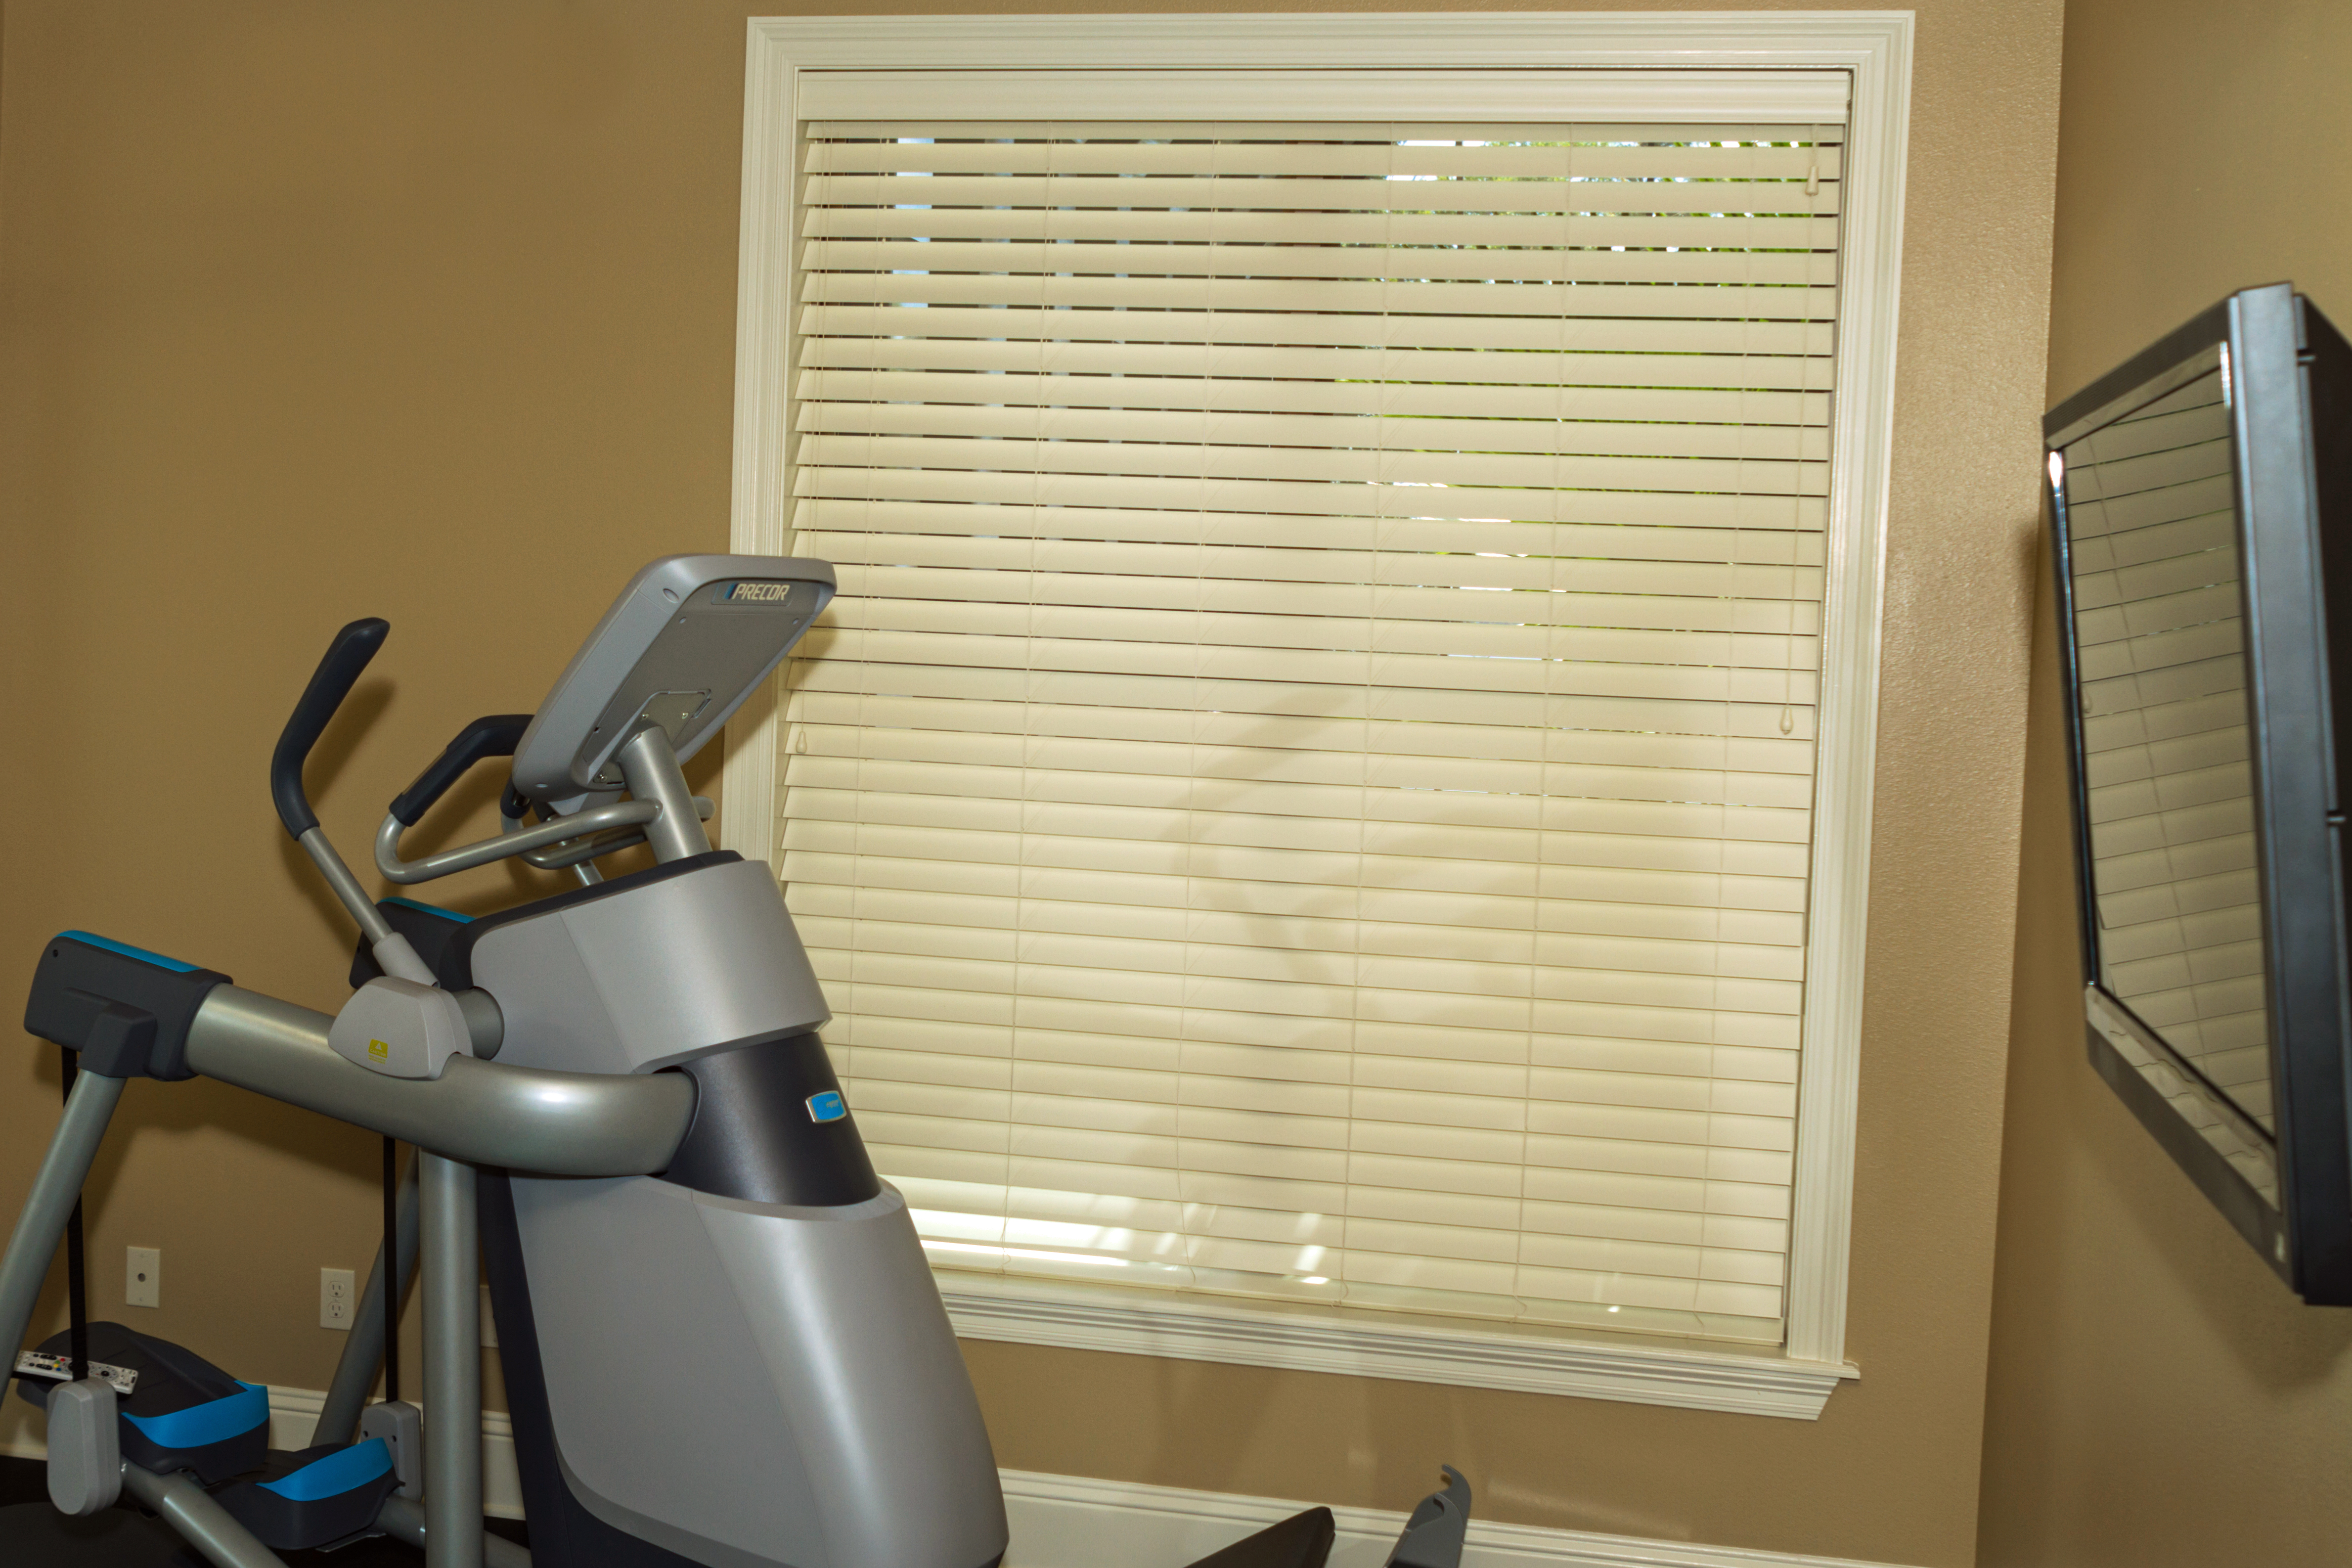 blinds shades norman i thewindowshade shutters com sync and phone